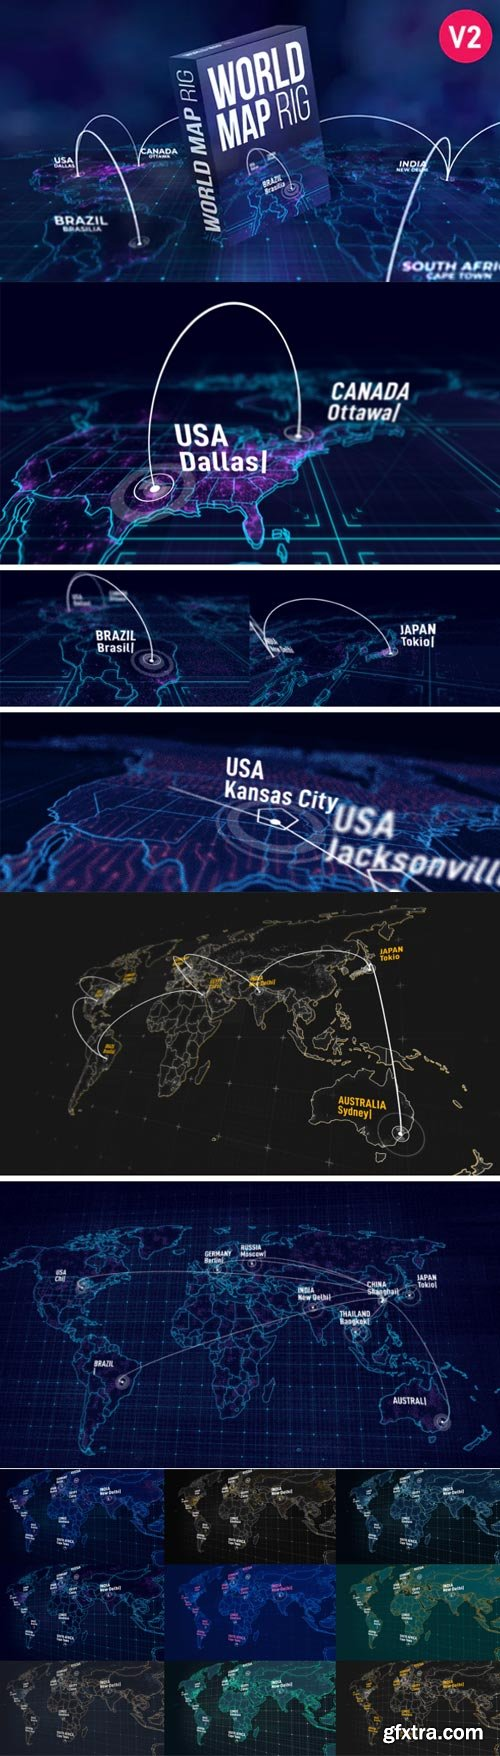 Videohive - World Map Rig V2 - 27809779